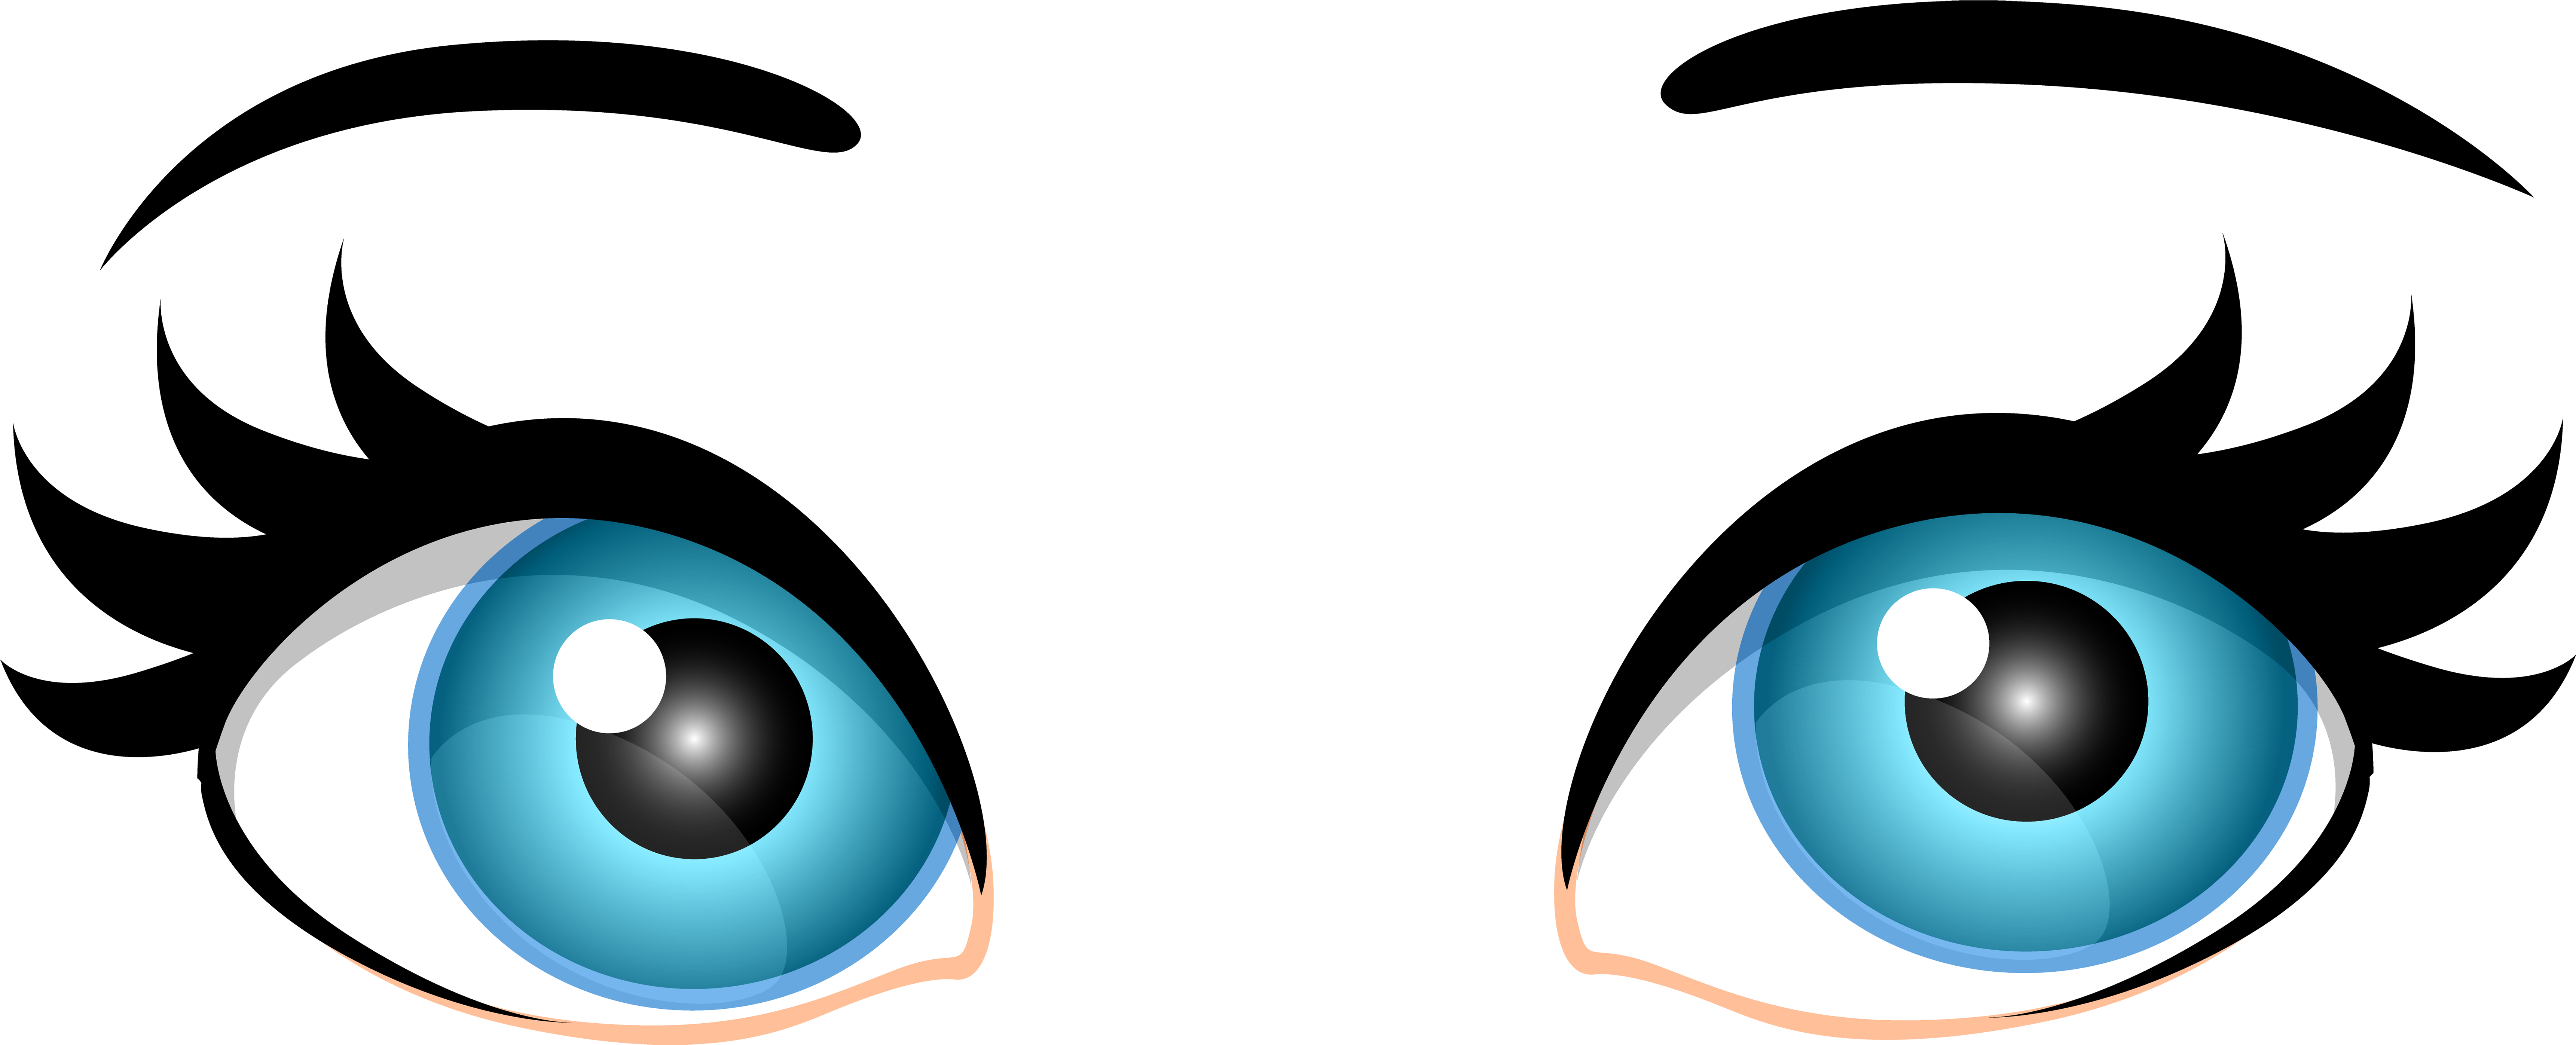 25 Eyes clipart transparent for free download on Premium art.